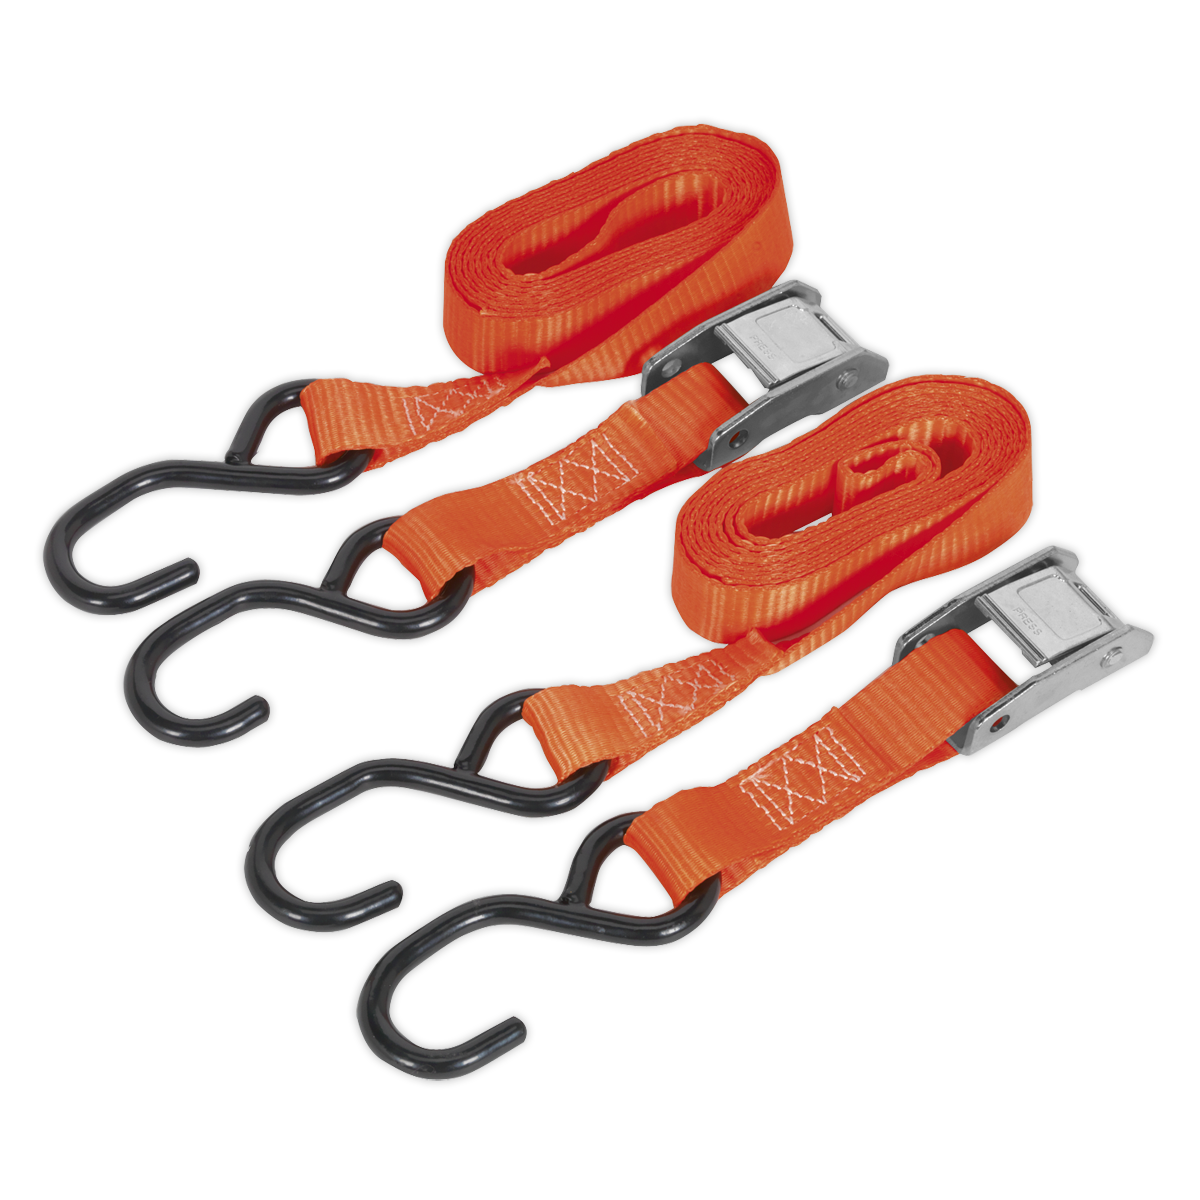 Cam Buckle Tie Down 25mm x 2.5mtr Polyester Webbing with S Hooks 500kg Load Test